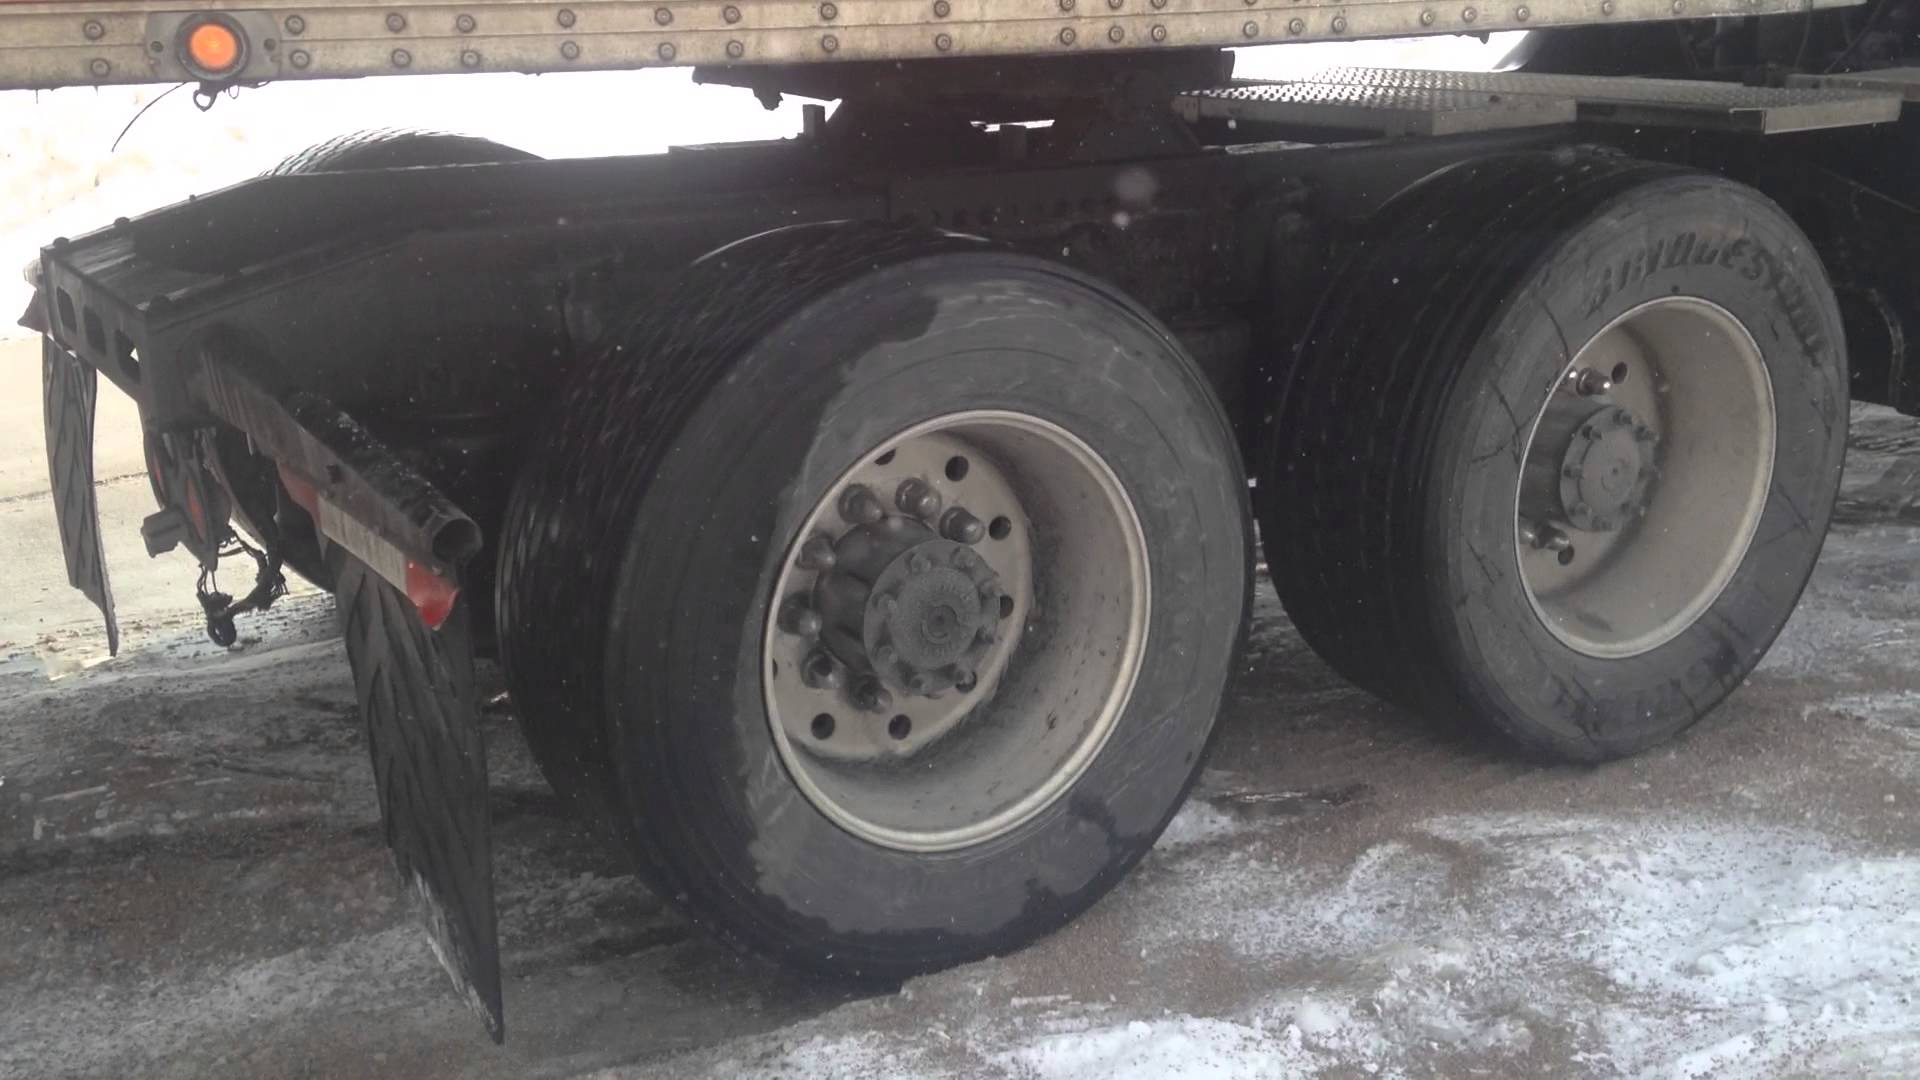 BIG RIG SPINNING TIRES